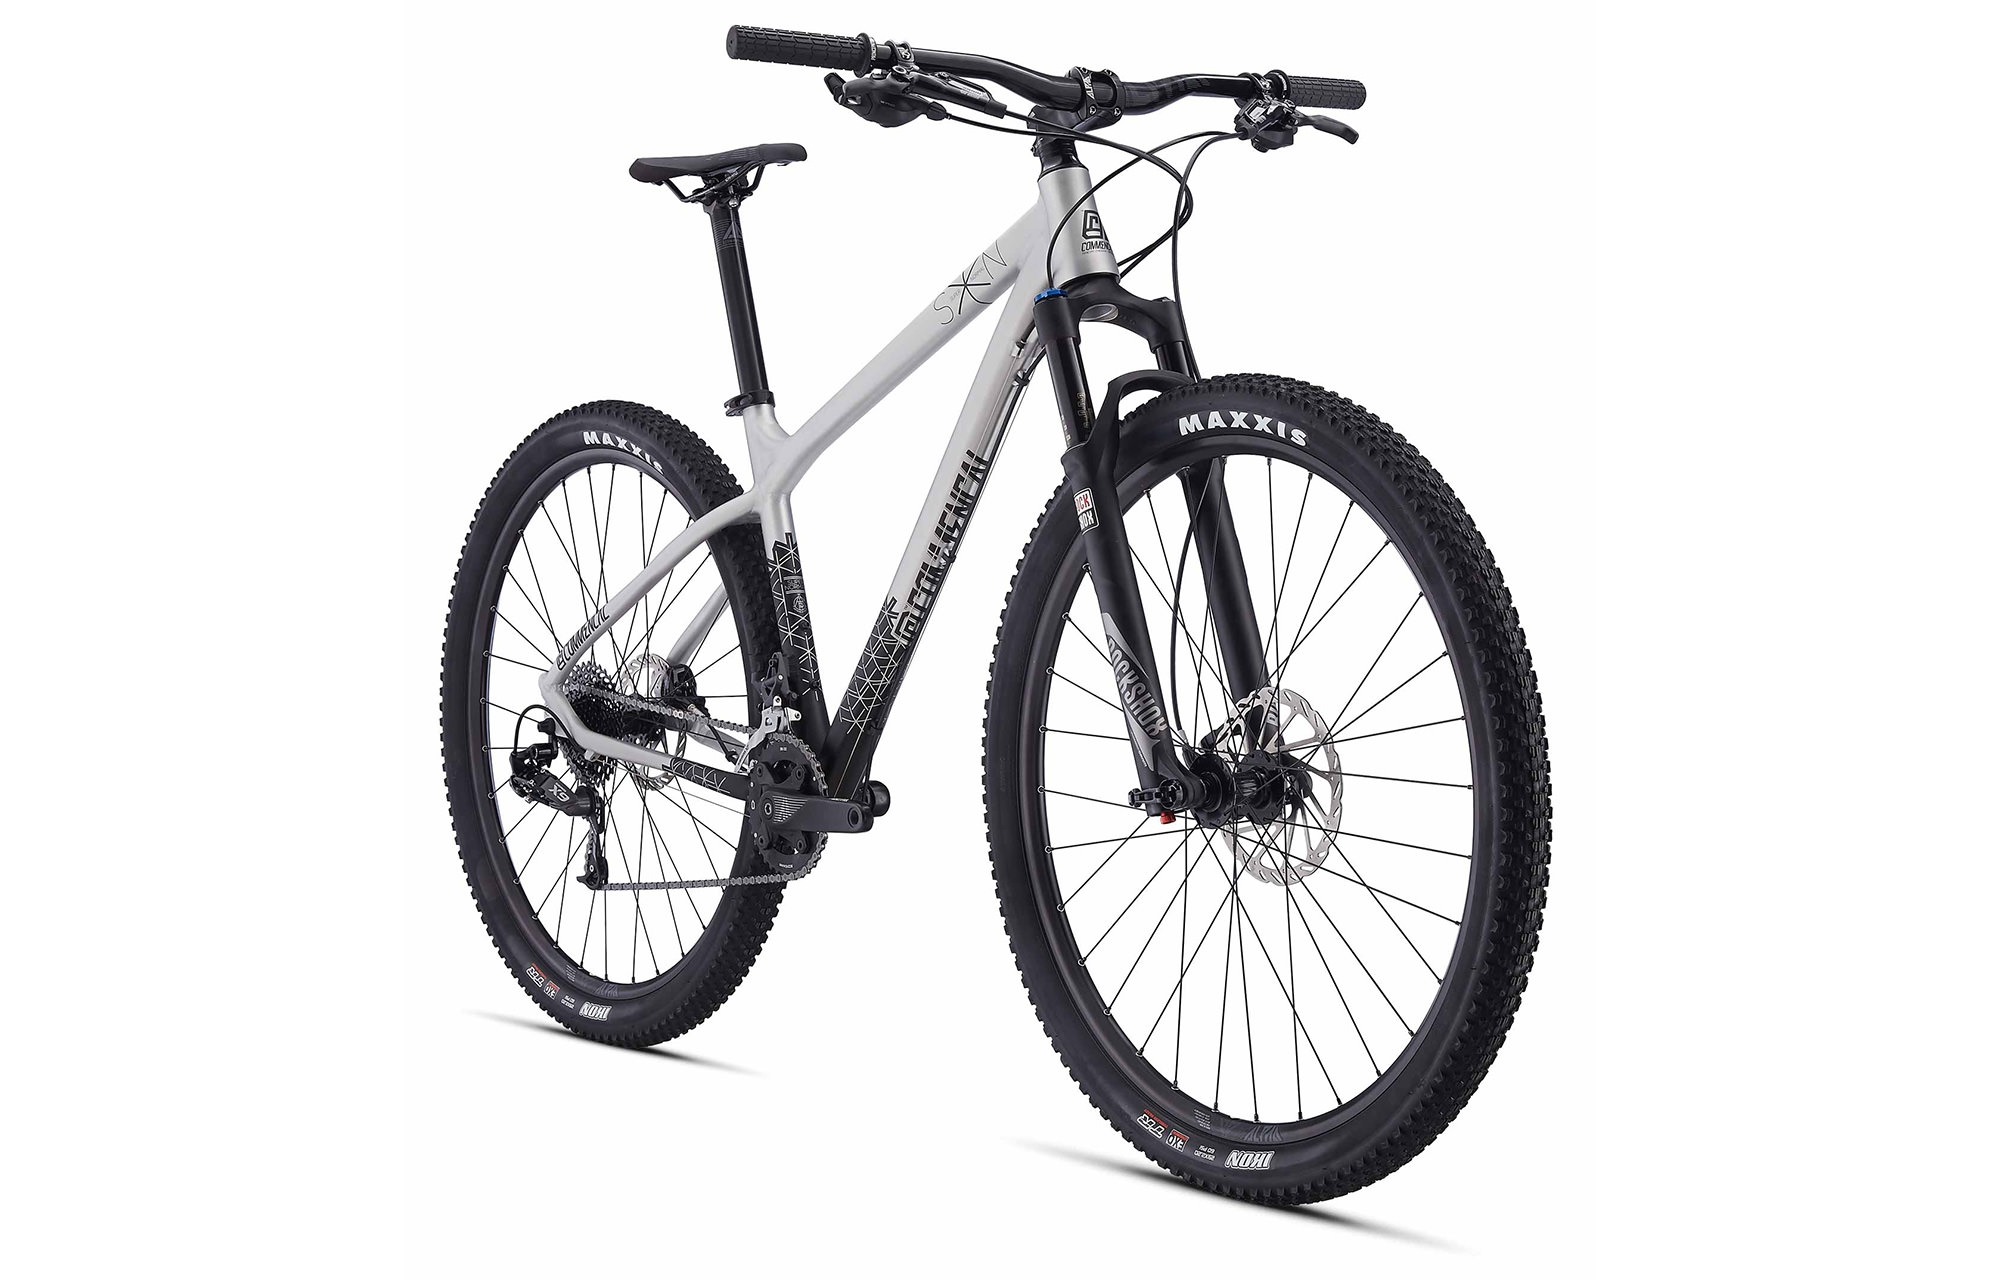 tags: #19 inch mongoose bikes#bike size for 5 10#gmc road bike sizing#gmc  denali hybrid bike frame size#bicycle gear inch table#21 inch road bike